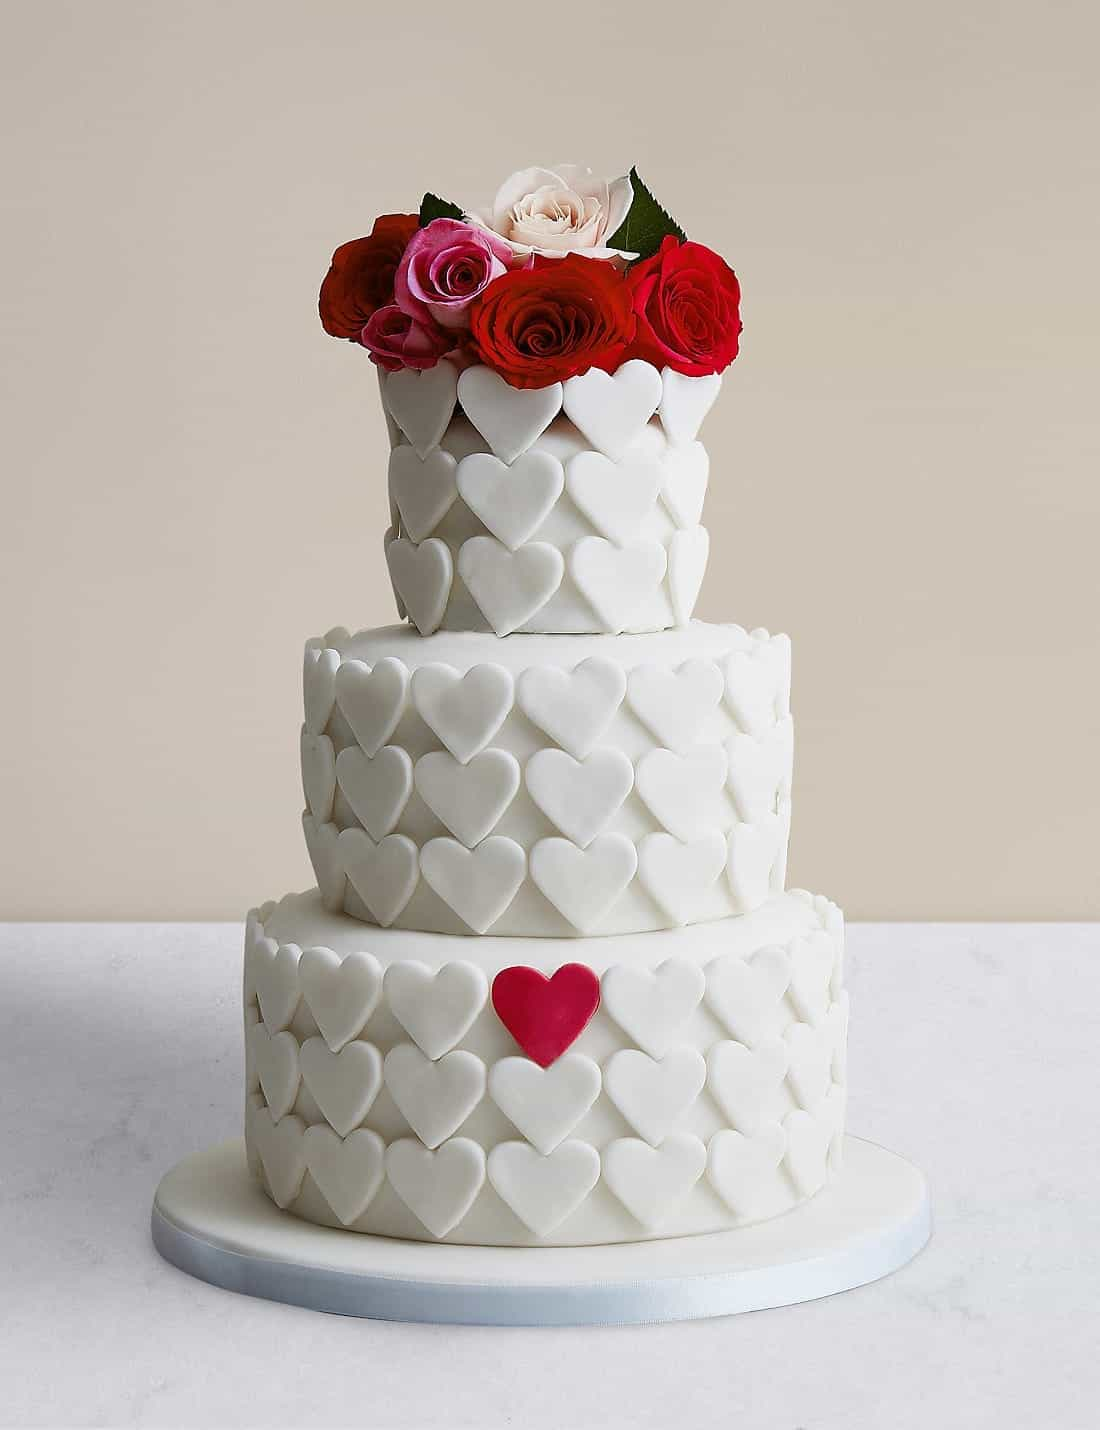 Serene Heart Chocolate Sponge Wedding Cake (Image 15 of 30)